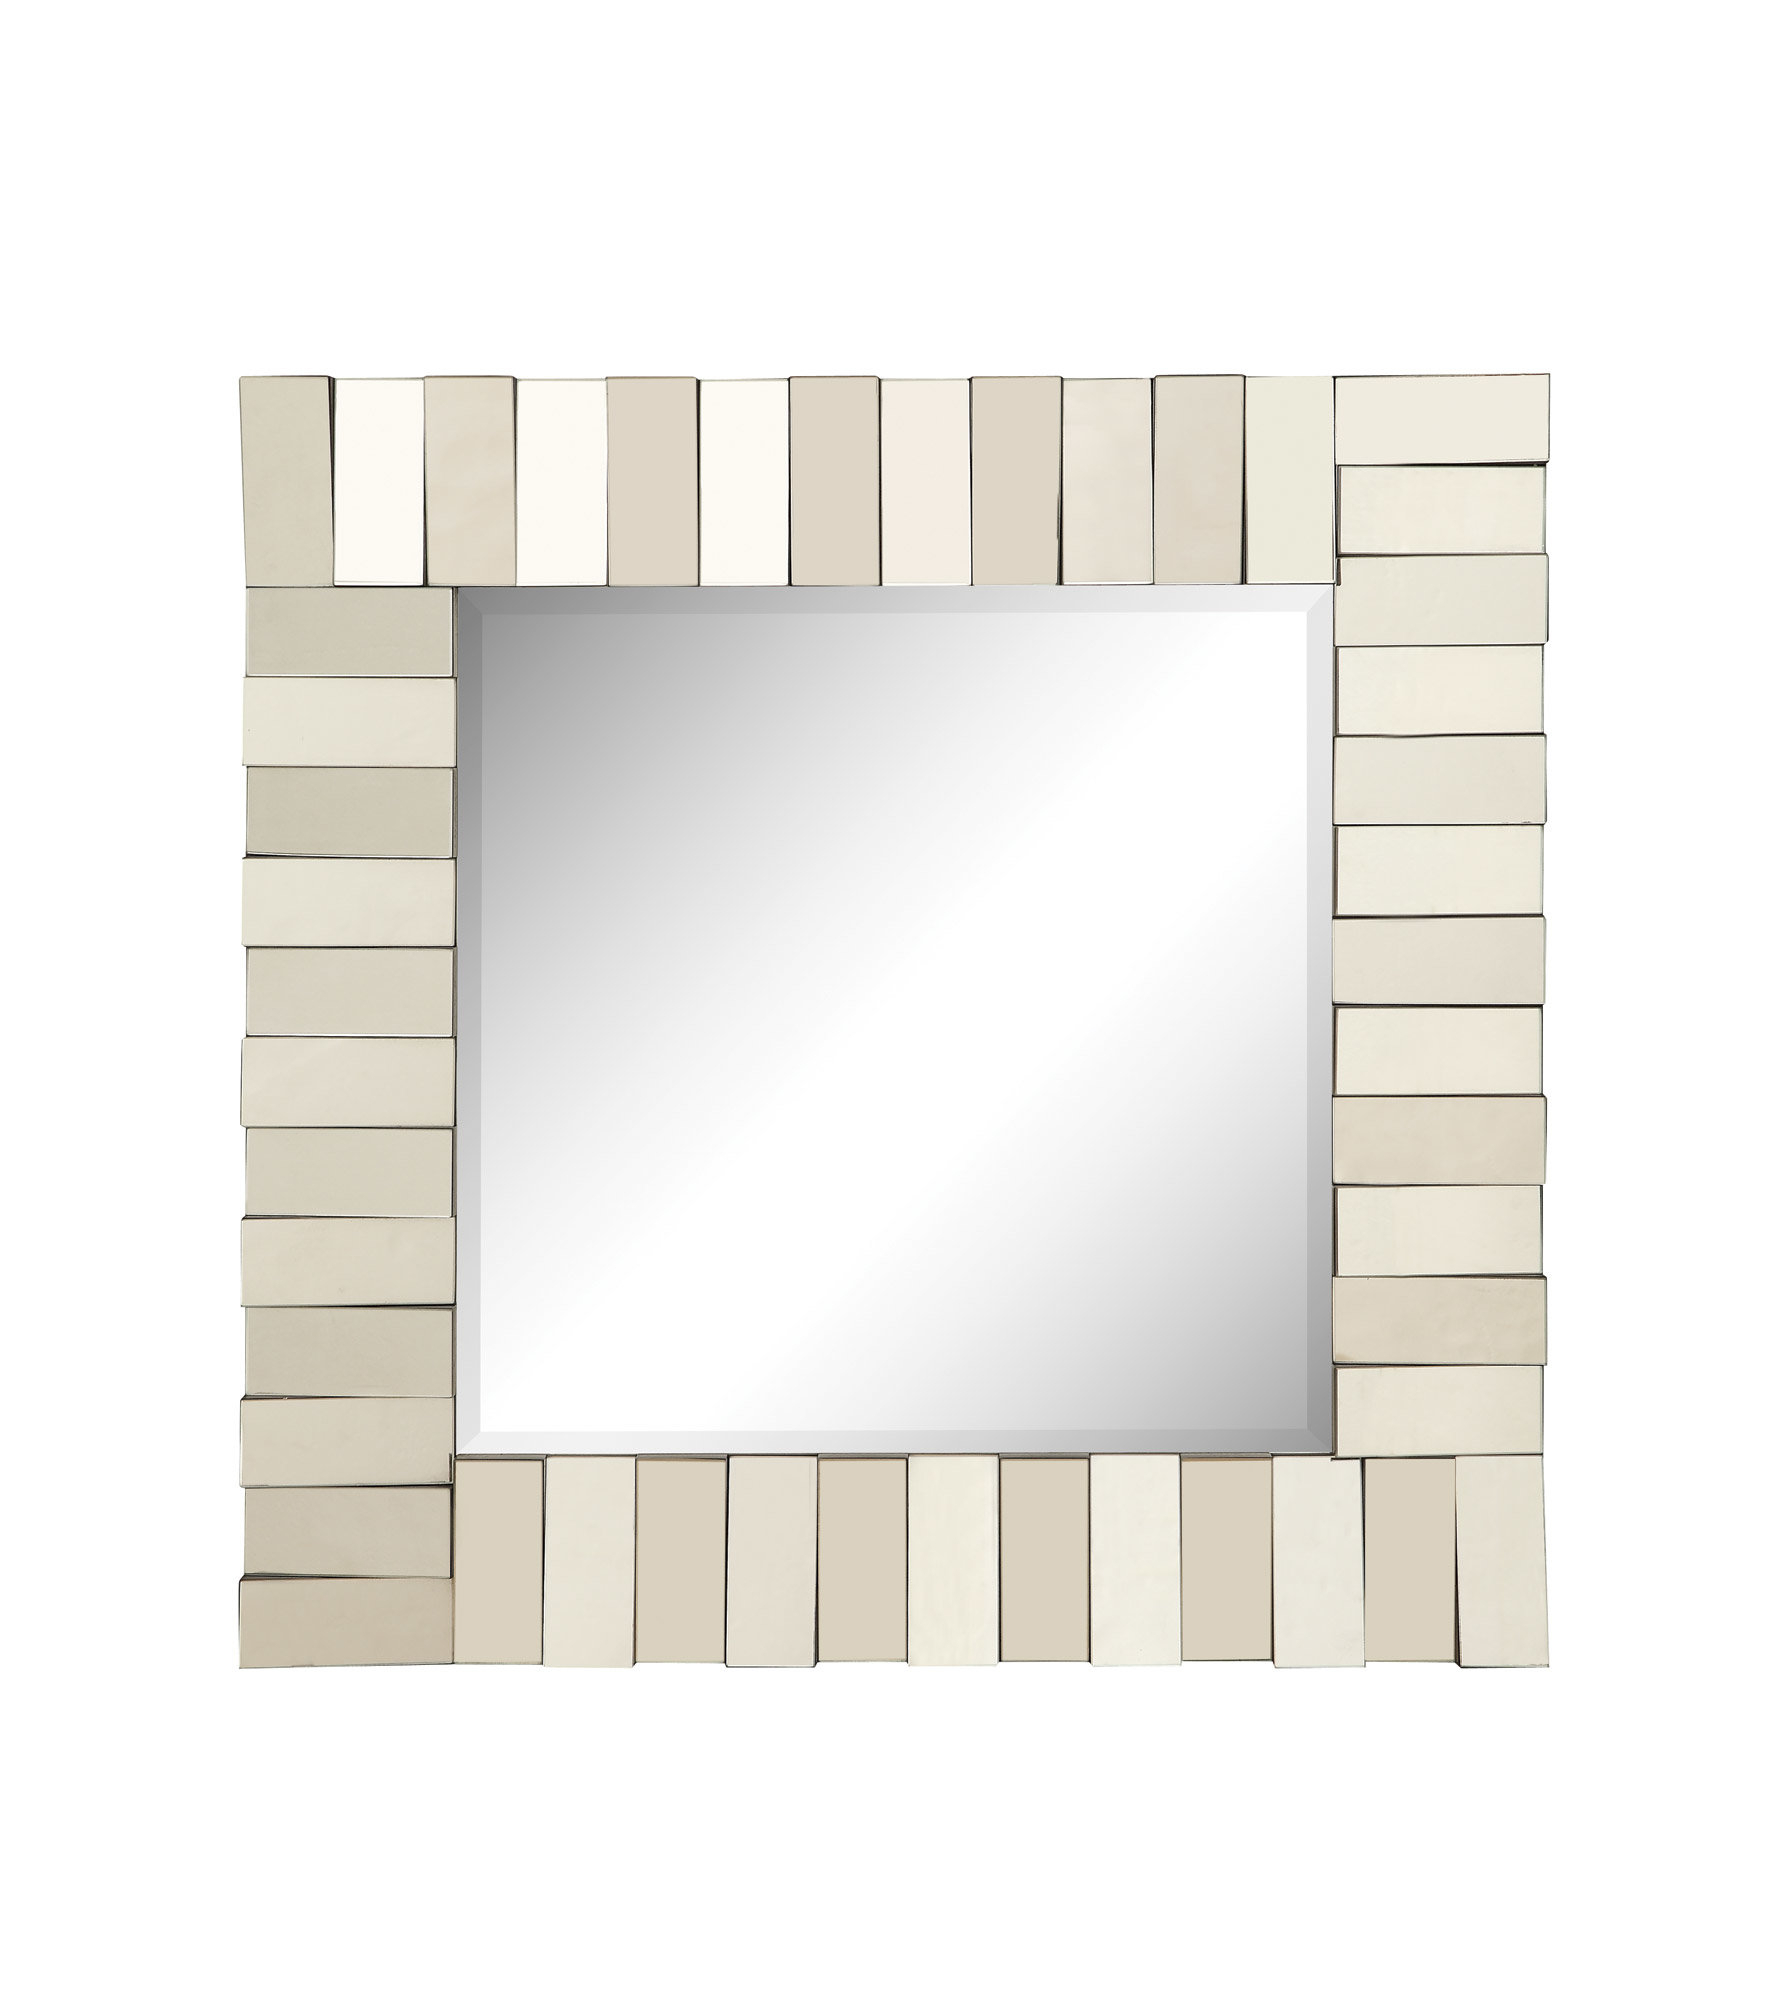 2019 Square Silver Wall Mirror & Reviews (Gallery 5 of 20)